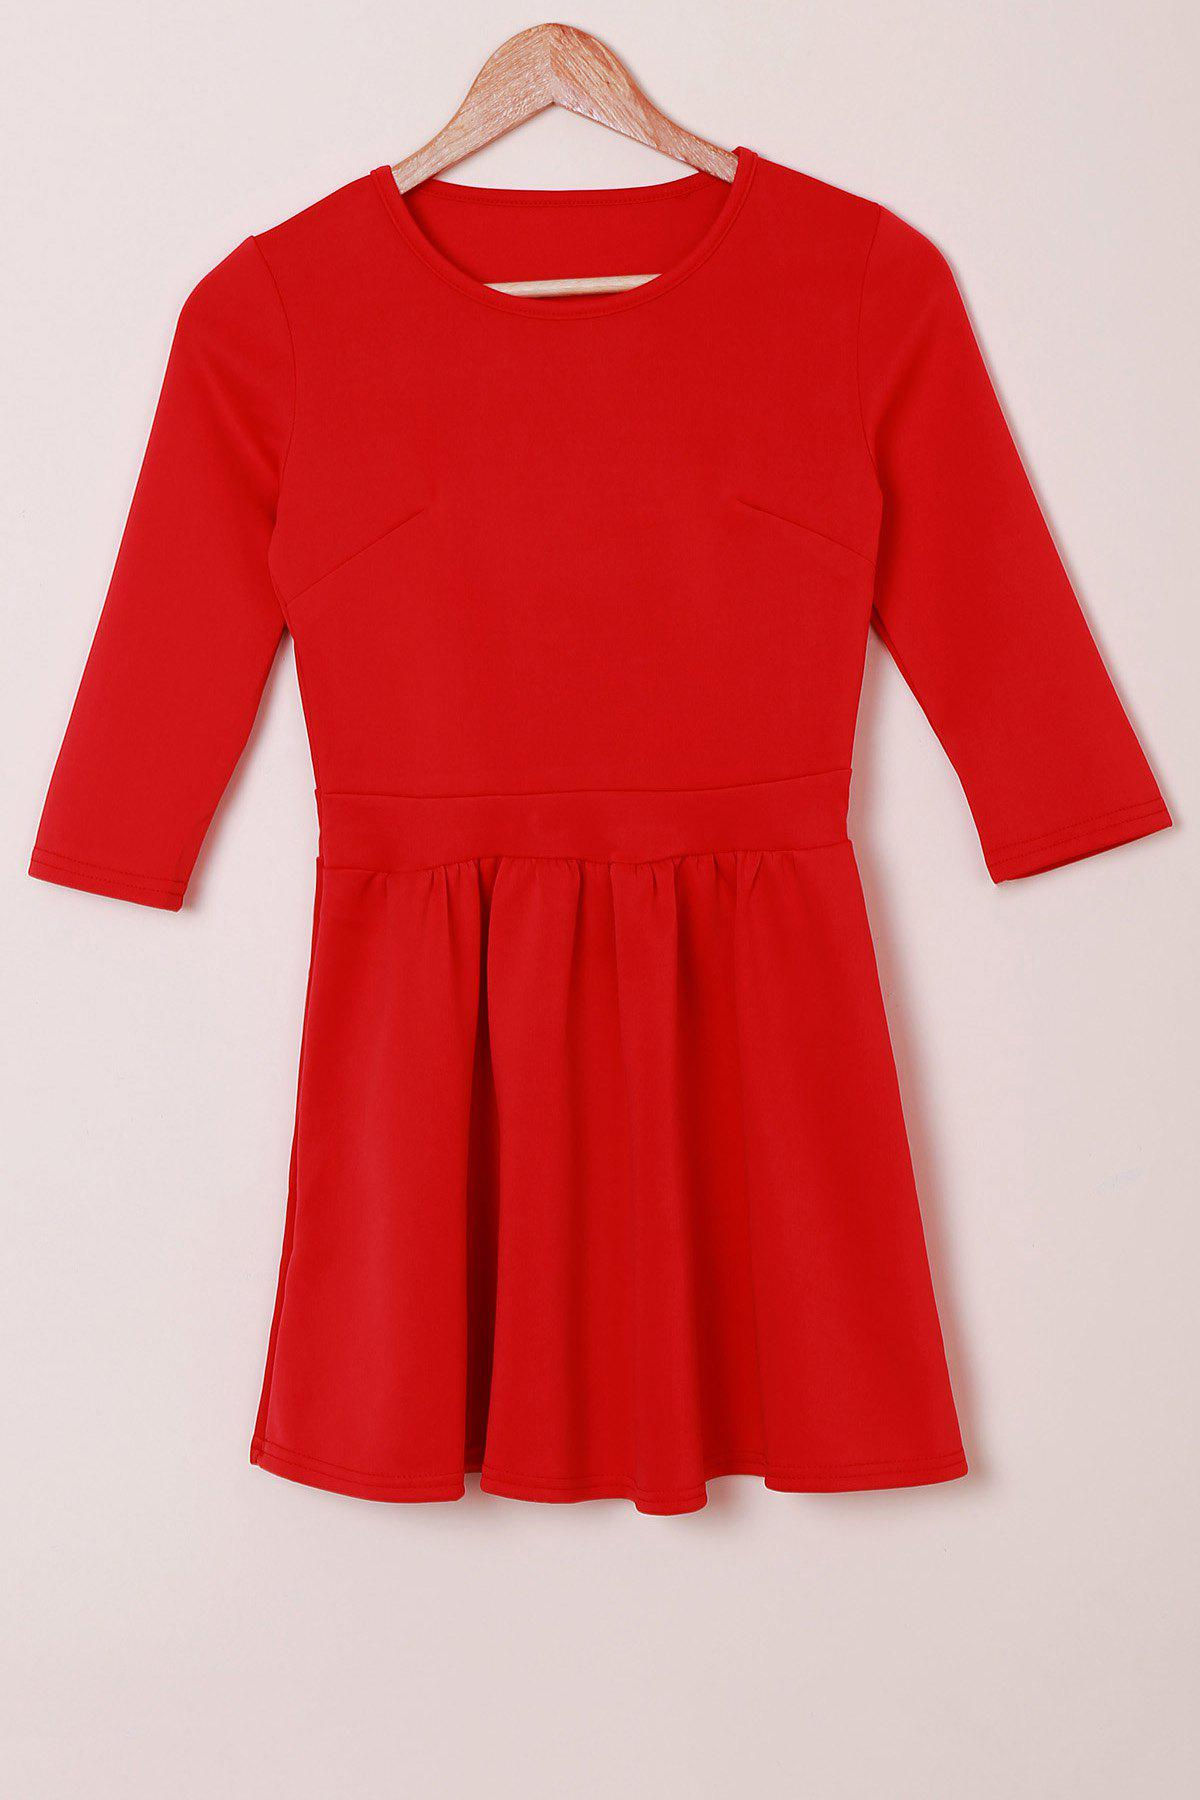 Refreshing Jewel Neck 3/4 Sleeve Solid Color High Waist Pleated Mini Dress For Women - RED S